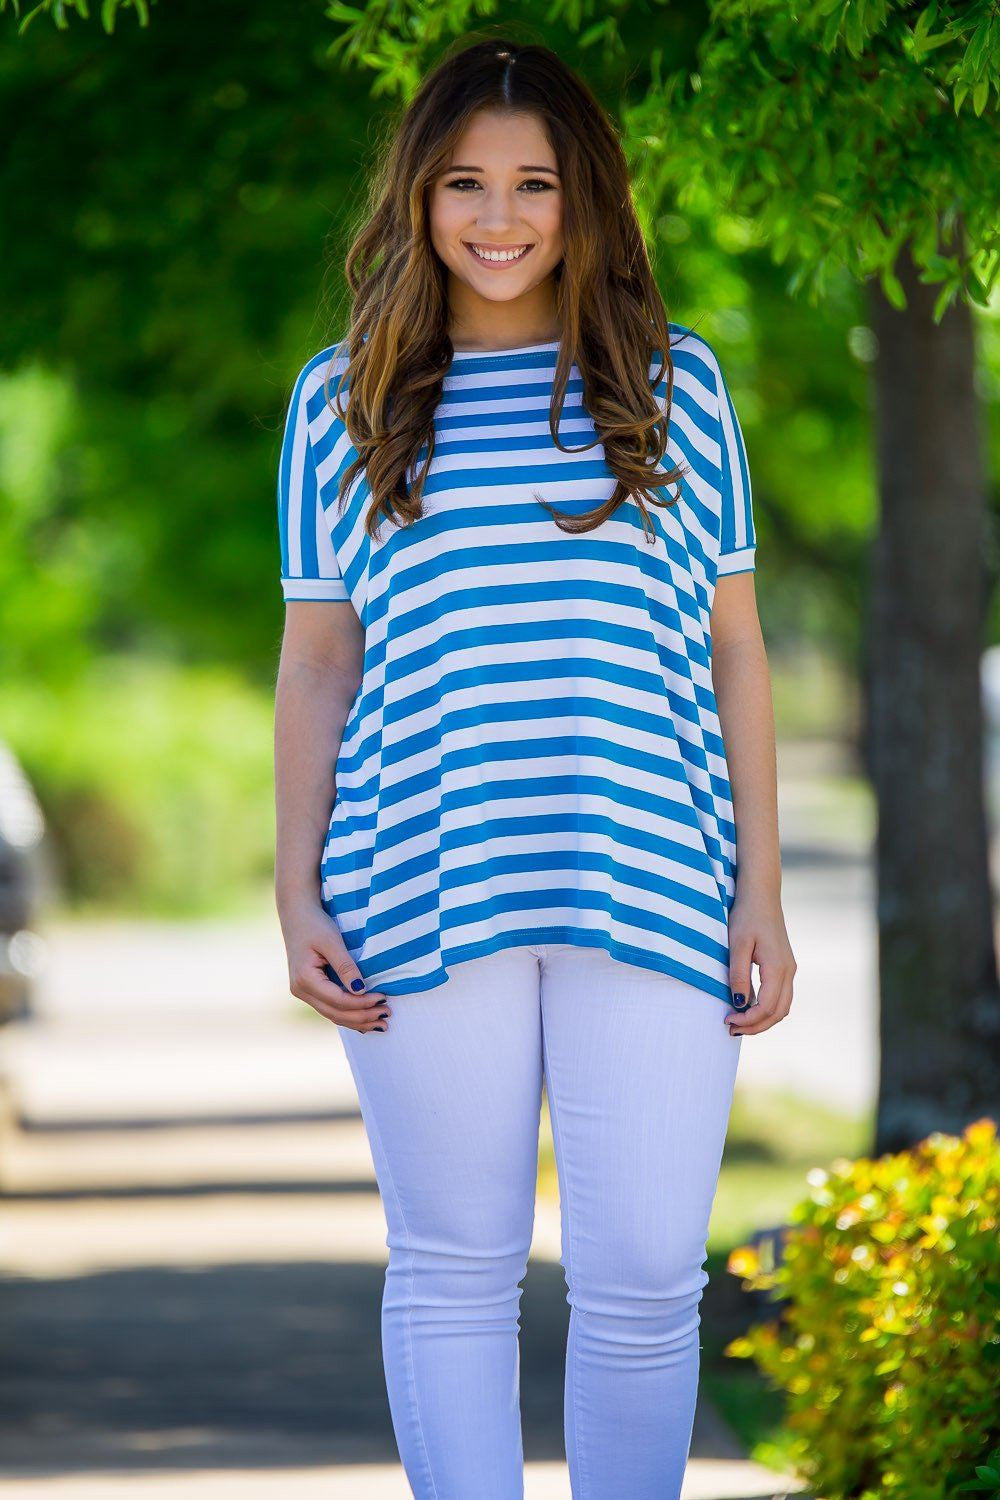 Short Sleeve Thick Stripe Piko Top - Blue/White - Piko Clothing - 1